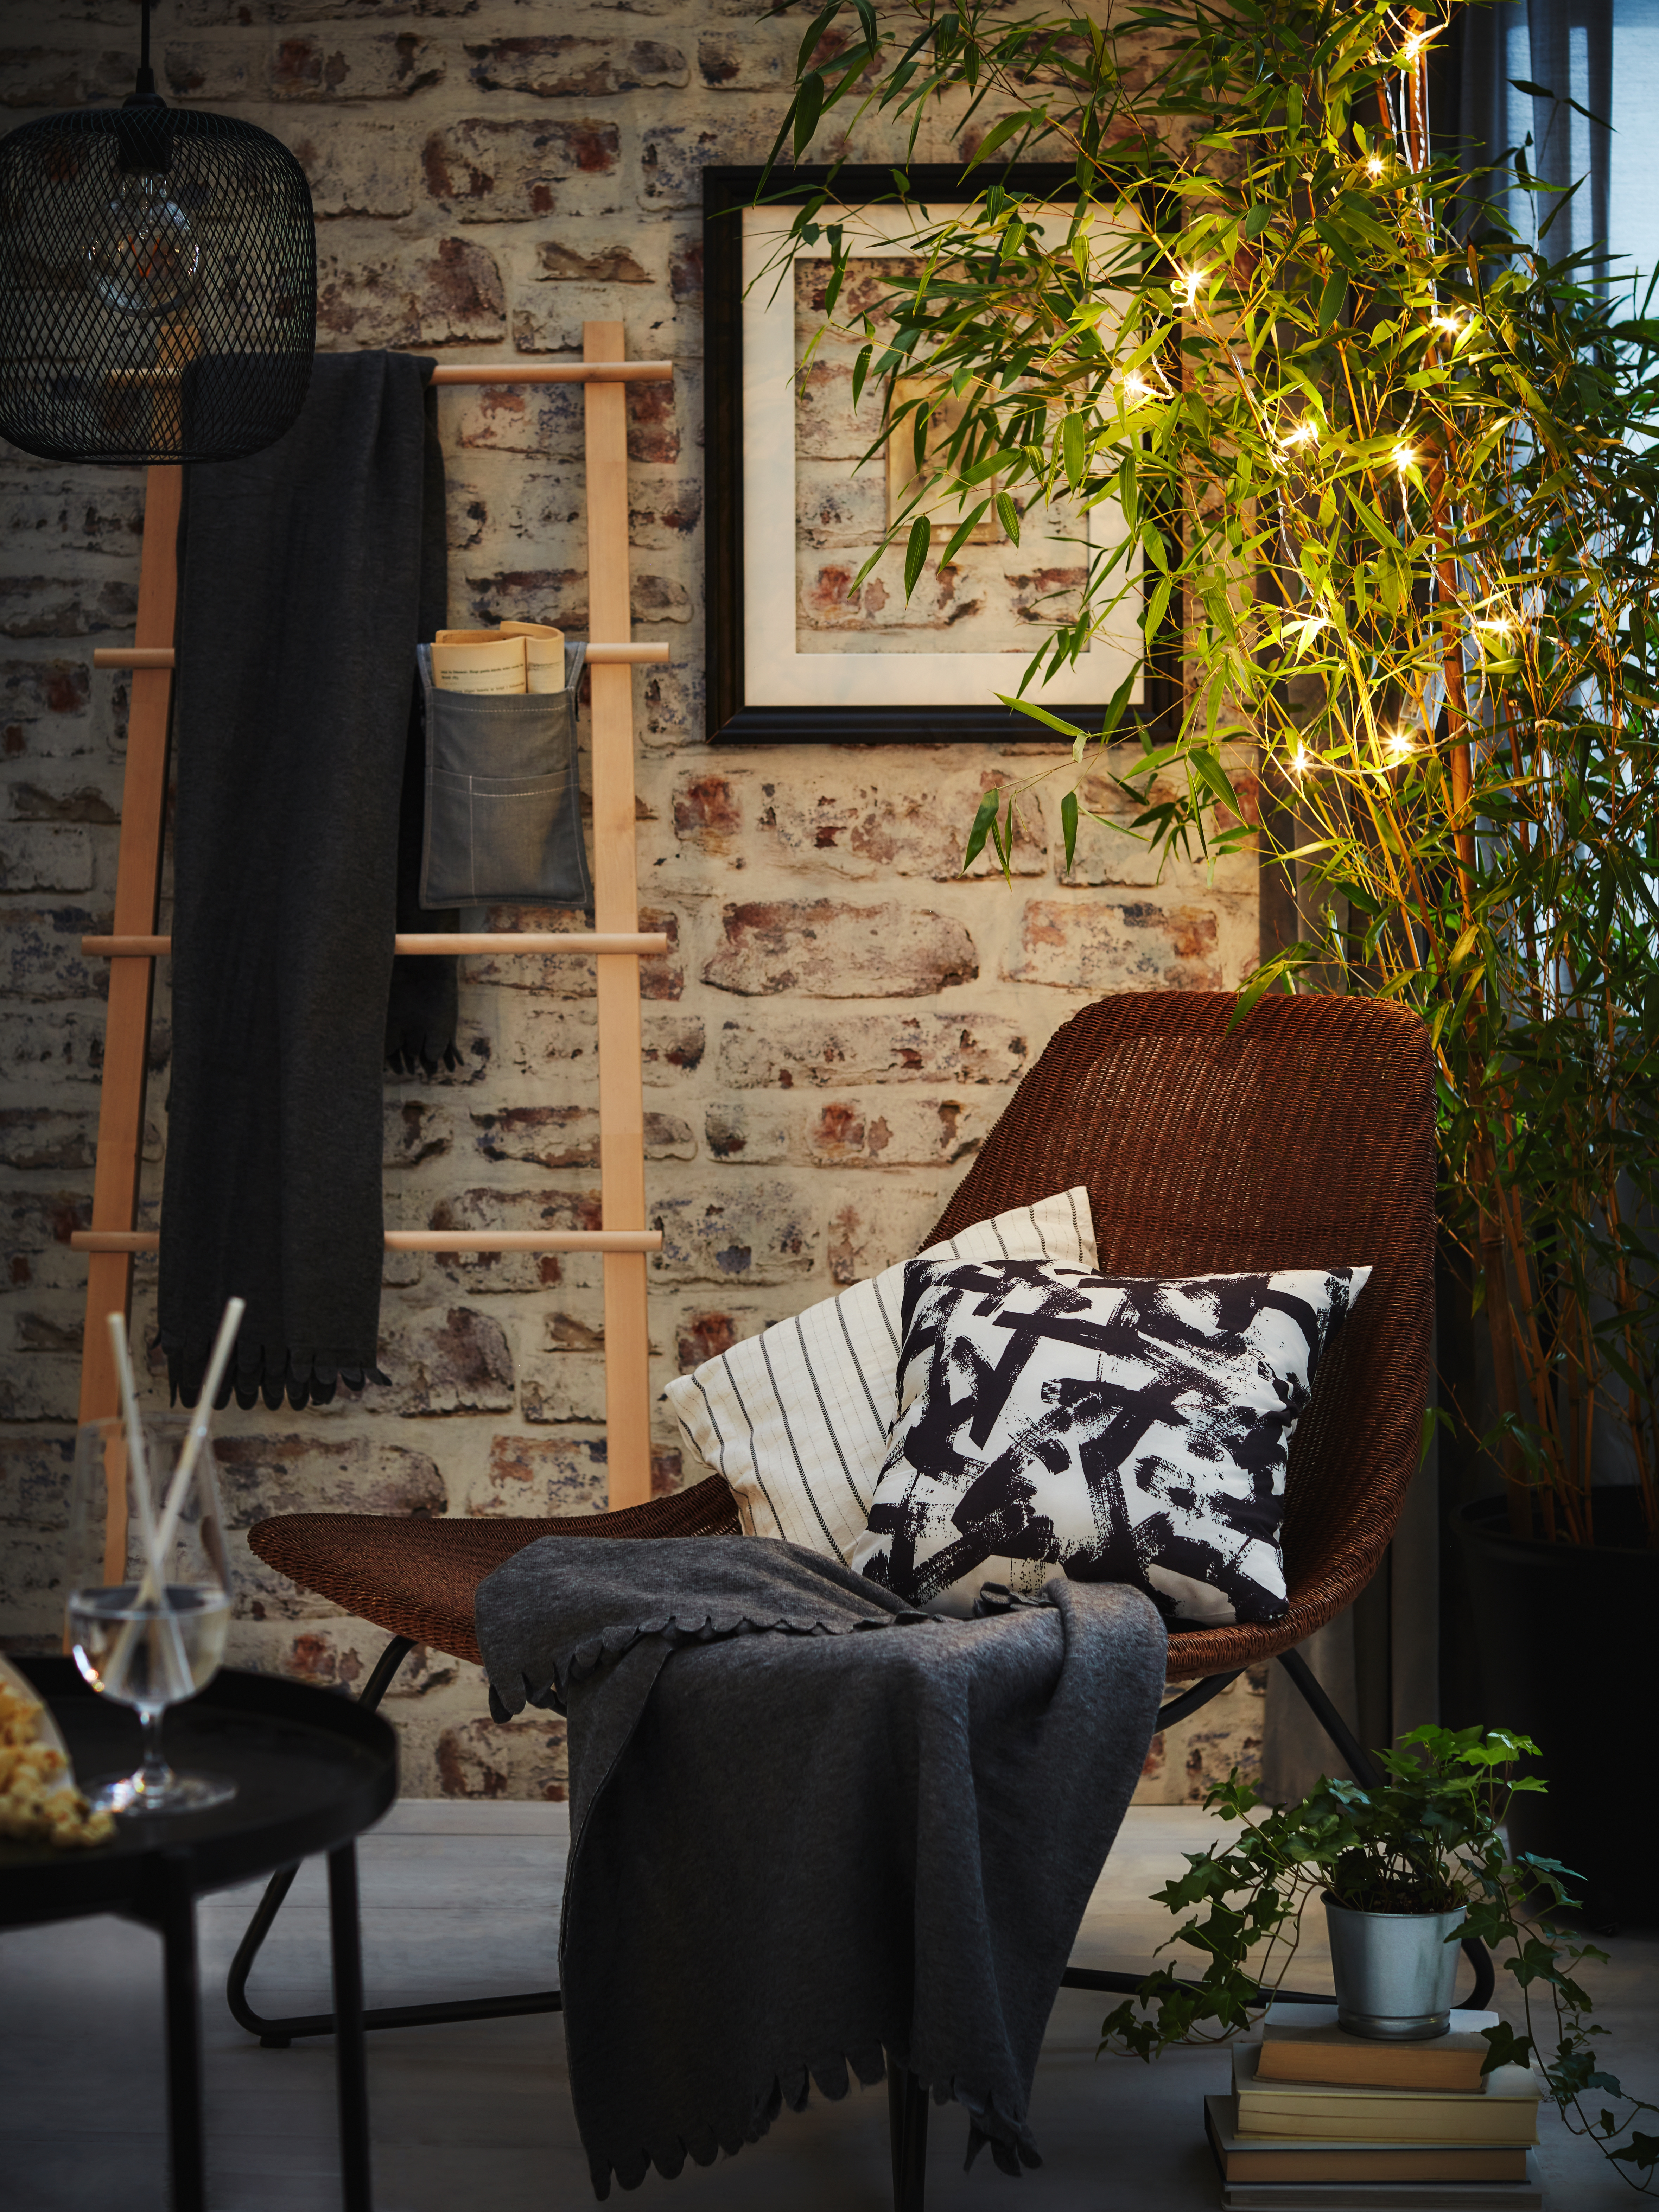 A reading nook surrounded by plants. Books on the floor, a drink on a coffee table and a POLARVIDE throw in the rattan chair.